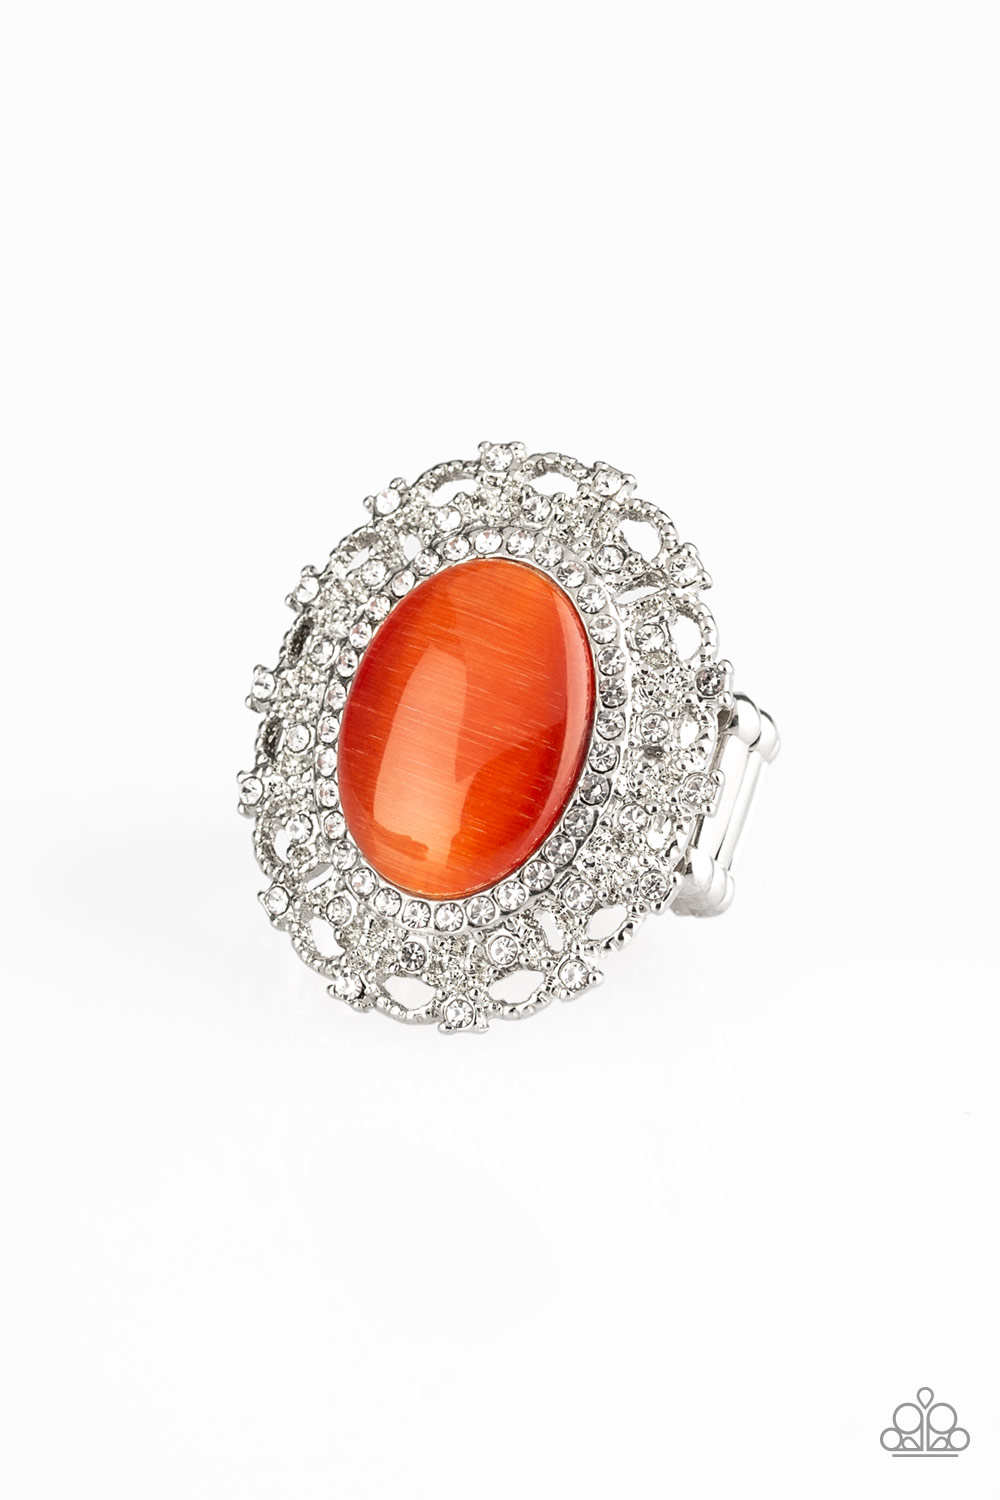 BAROQUE The Spell - Orange Ring $5 my-bling.com  Gorgeous large orange stone set in rhinestones.